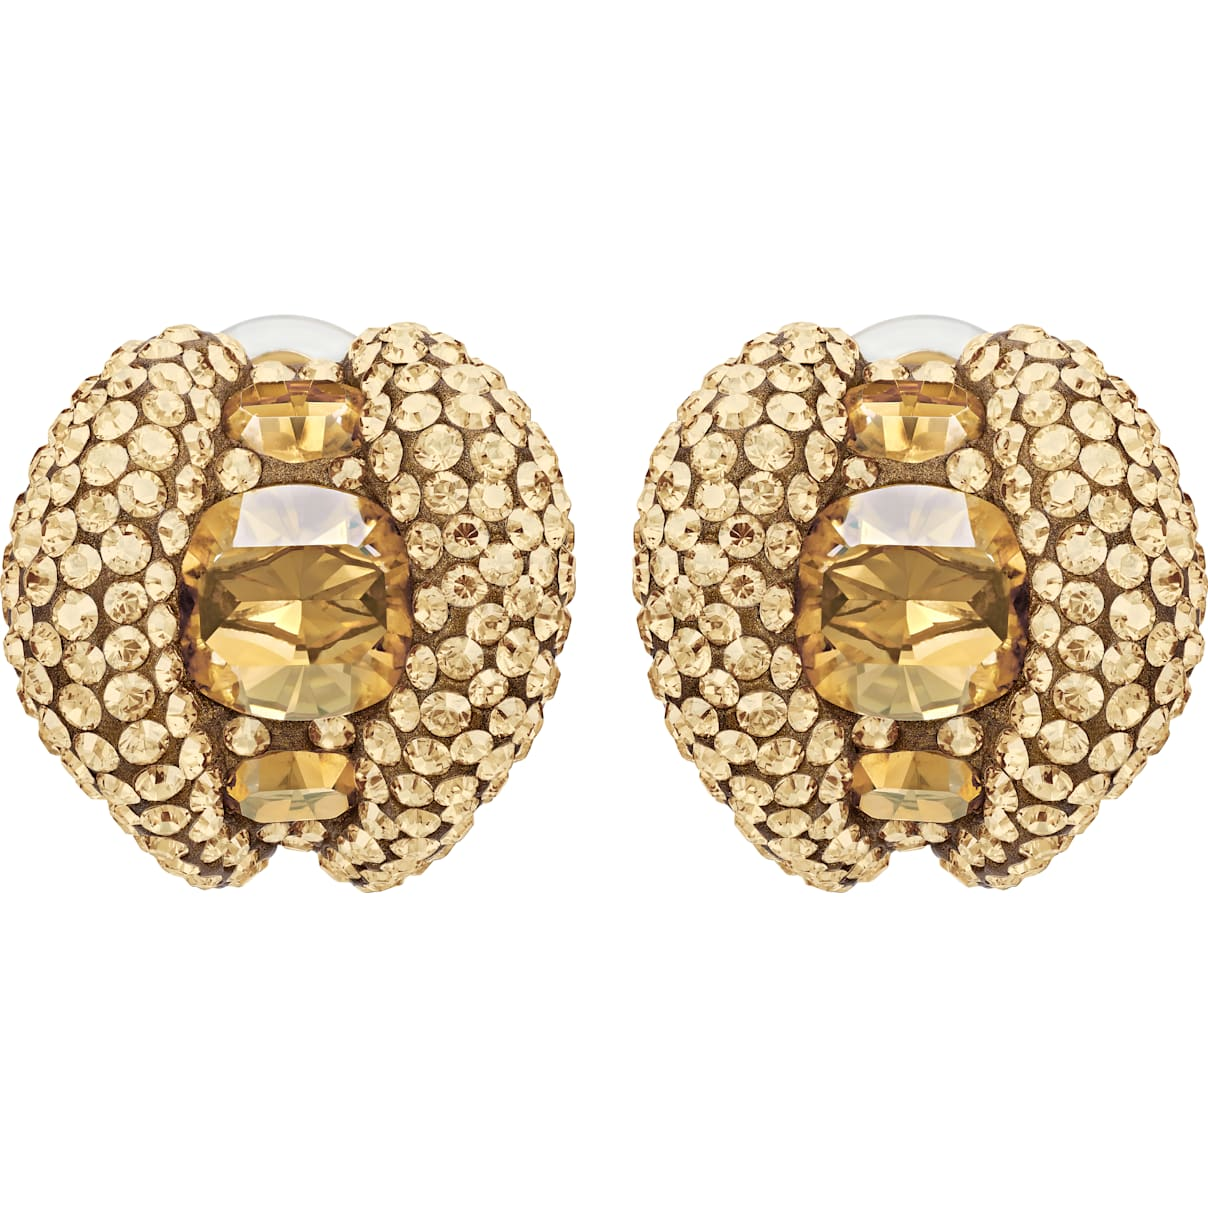 Swarovski Tigris Stud Clip Earrings, Brown, Gold-tone plated